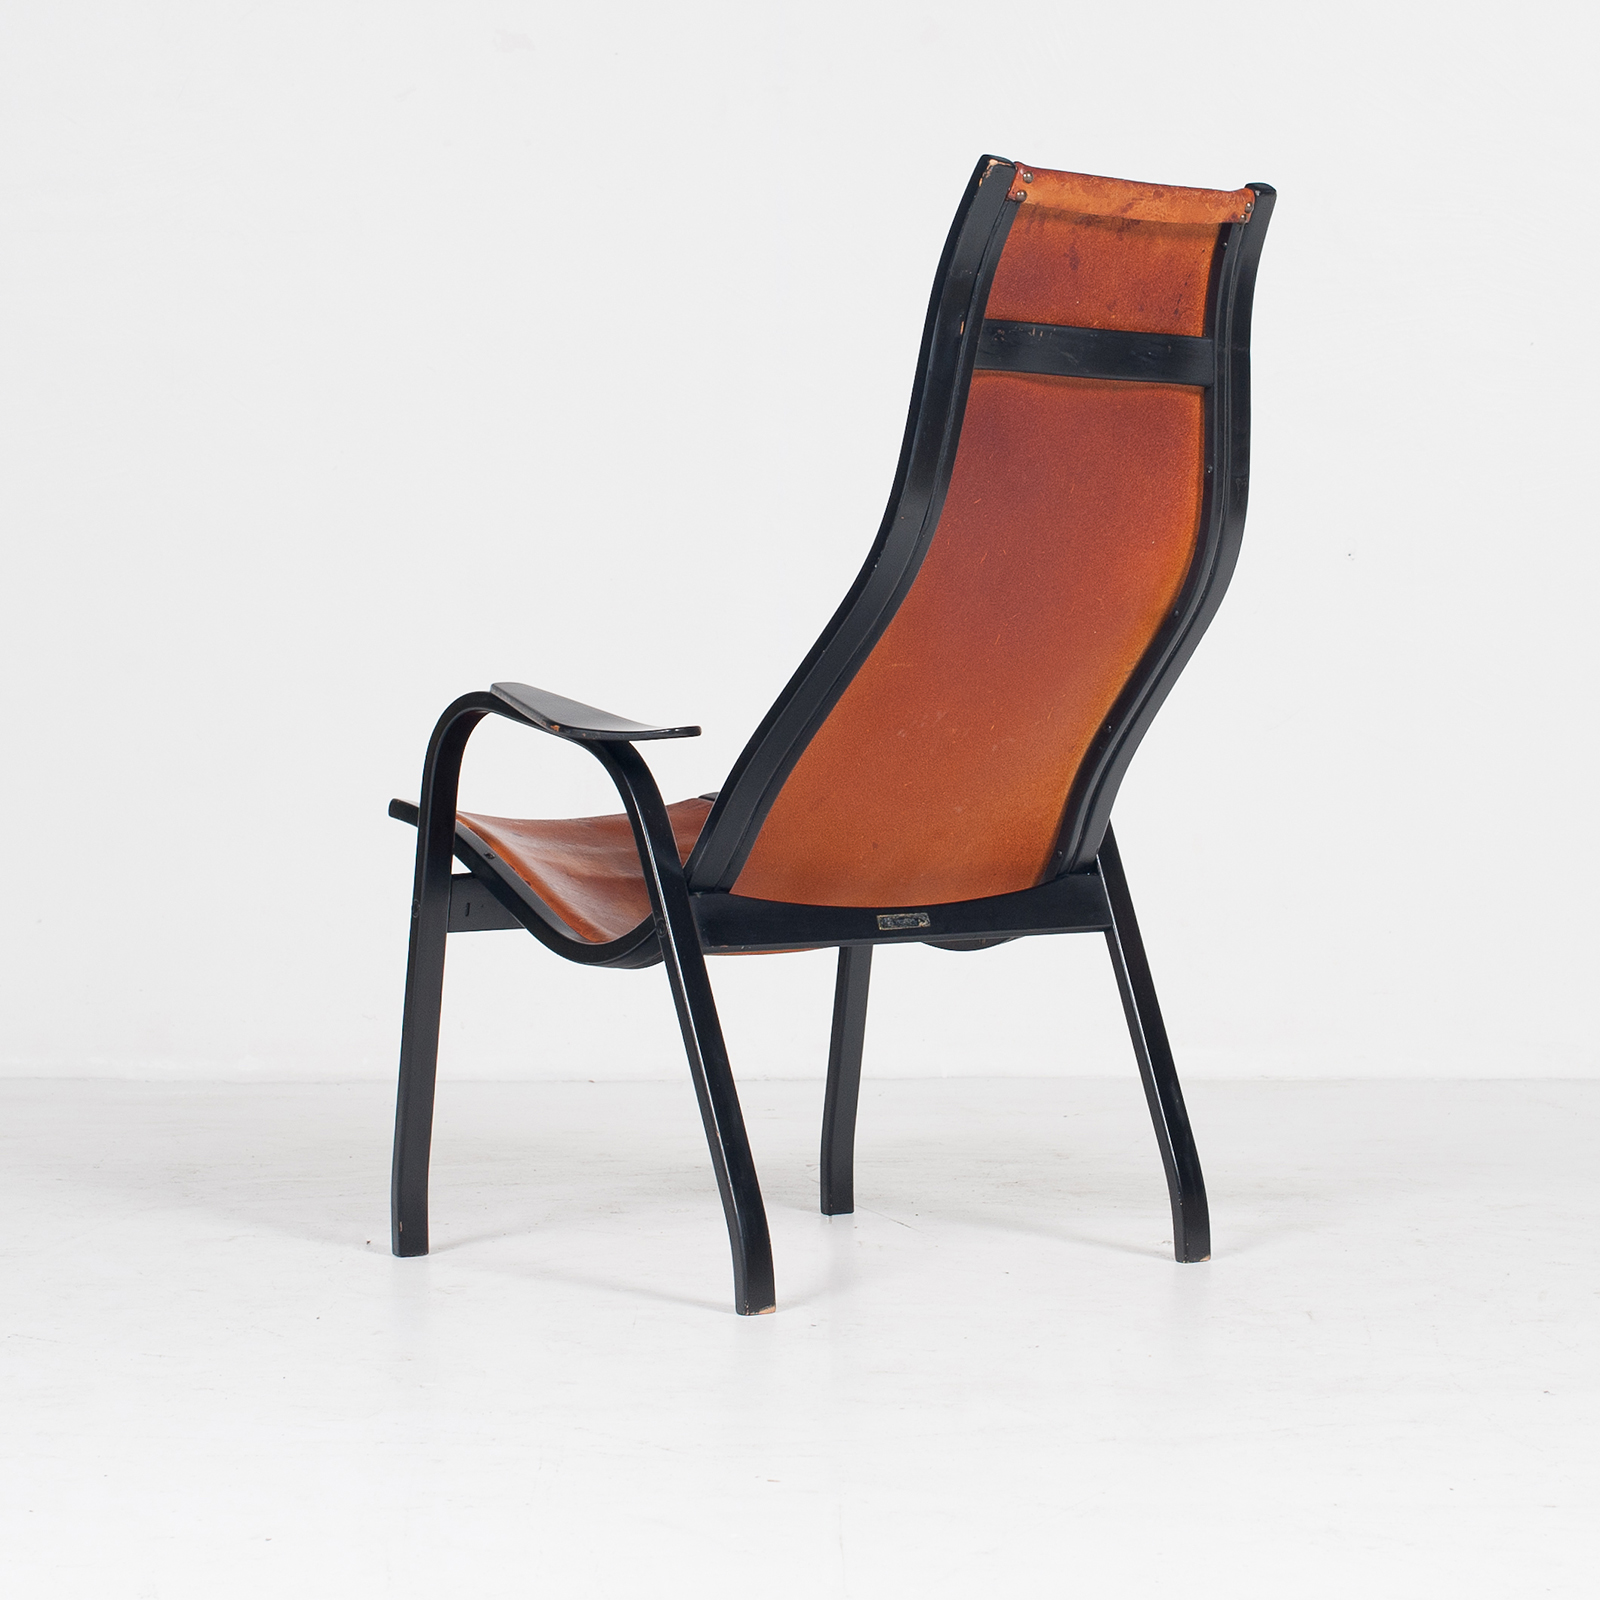 Kurva Lounge Chair By Yngve Ekstrom For Swedese In Tan Leather, 1950s, Sweden 37